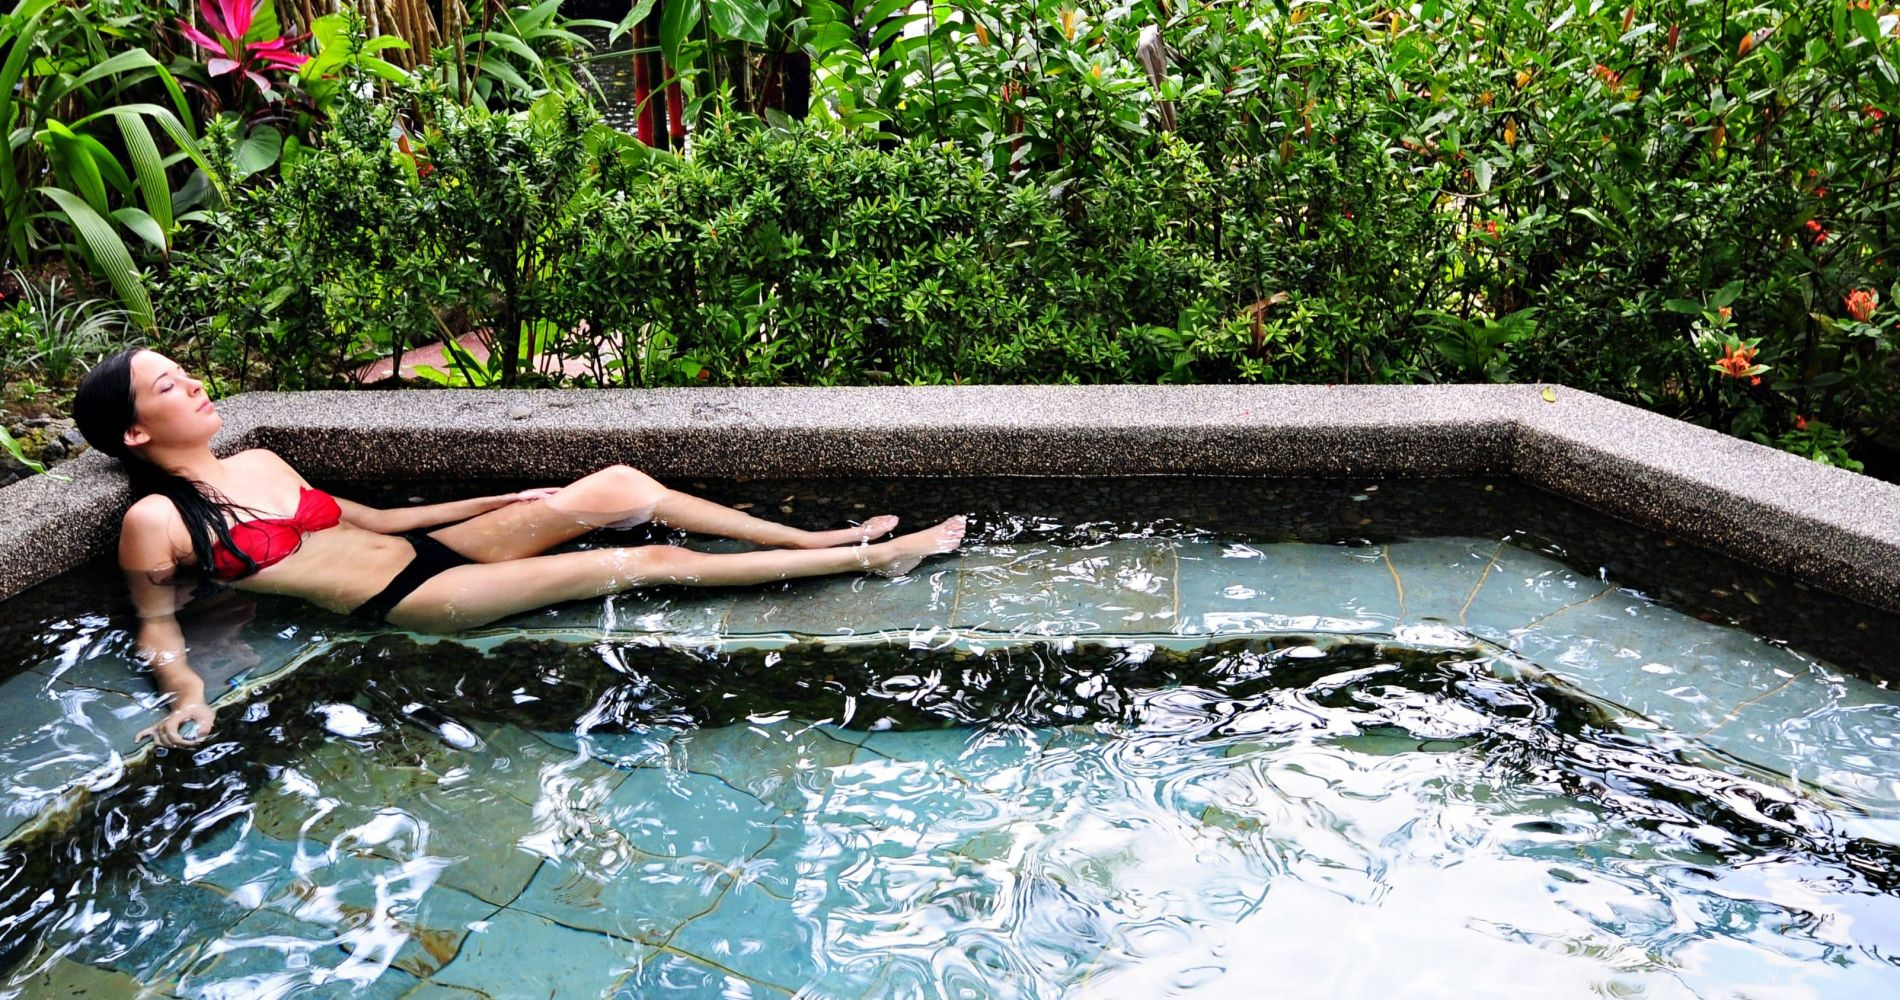 Full Day Pass to Thermal Spa in Costa Rica